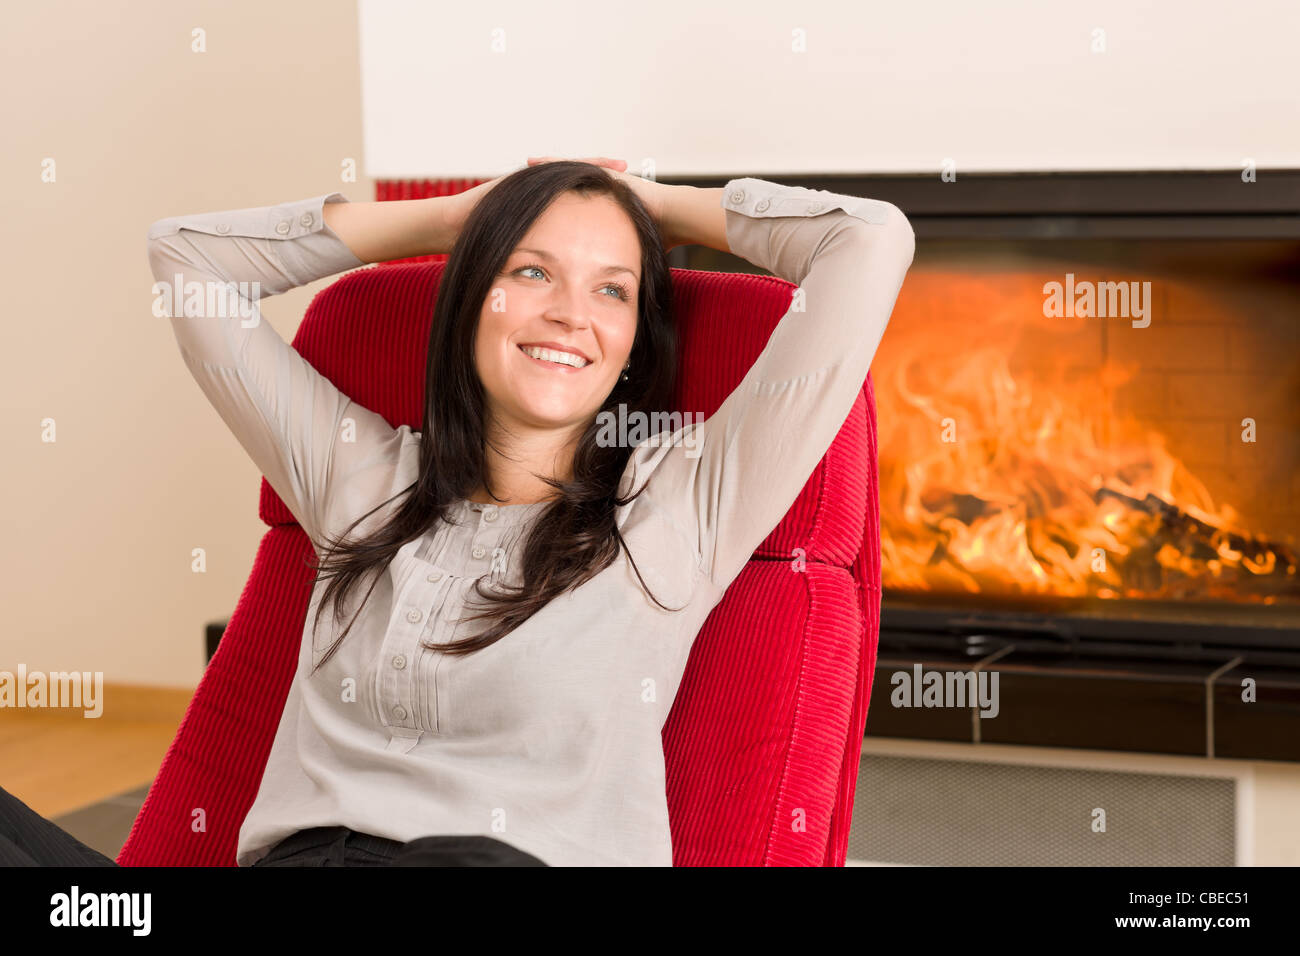 woman relax fireplace stockfotos woman relax fireplace bilder alamy. Black Bedroom Furniture Sets. Home Design Ideas